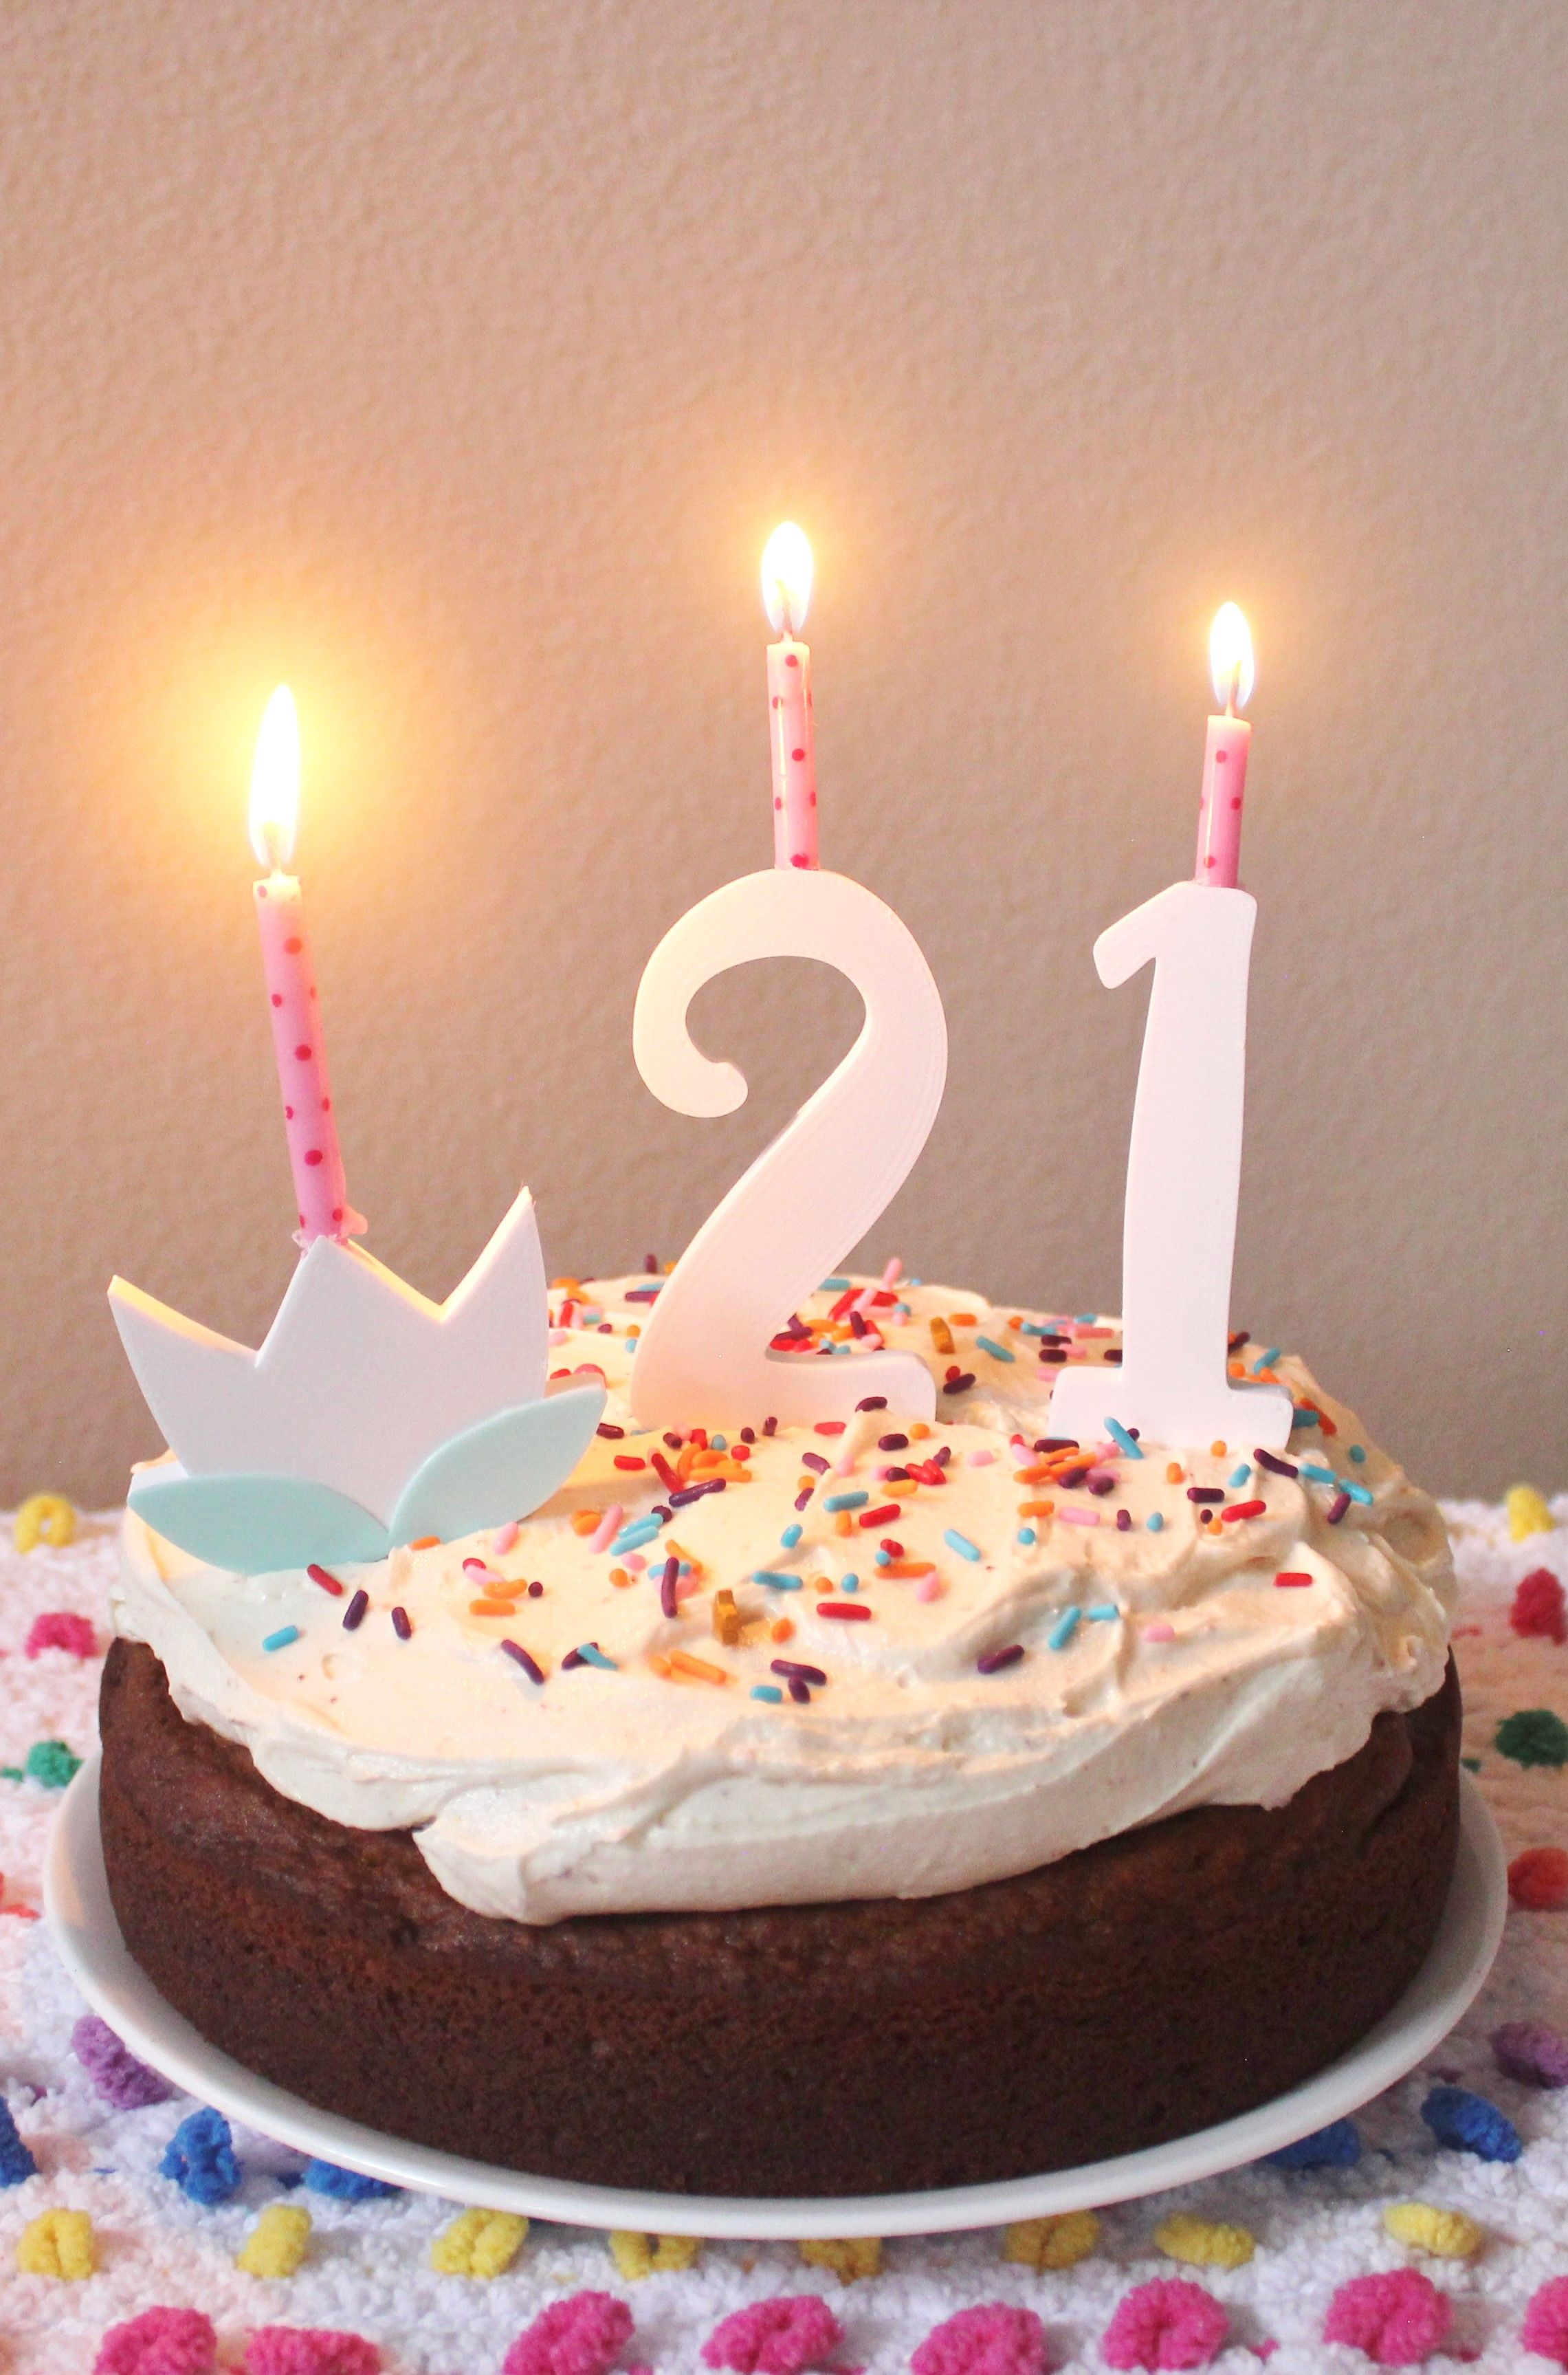 21st Birthday Cake Idea Reusable Age Number Candles Or Toppers 0 9 And Flower Can Hold Standard